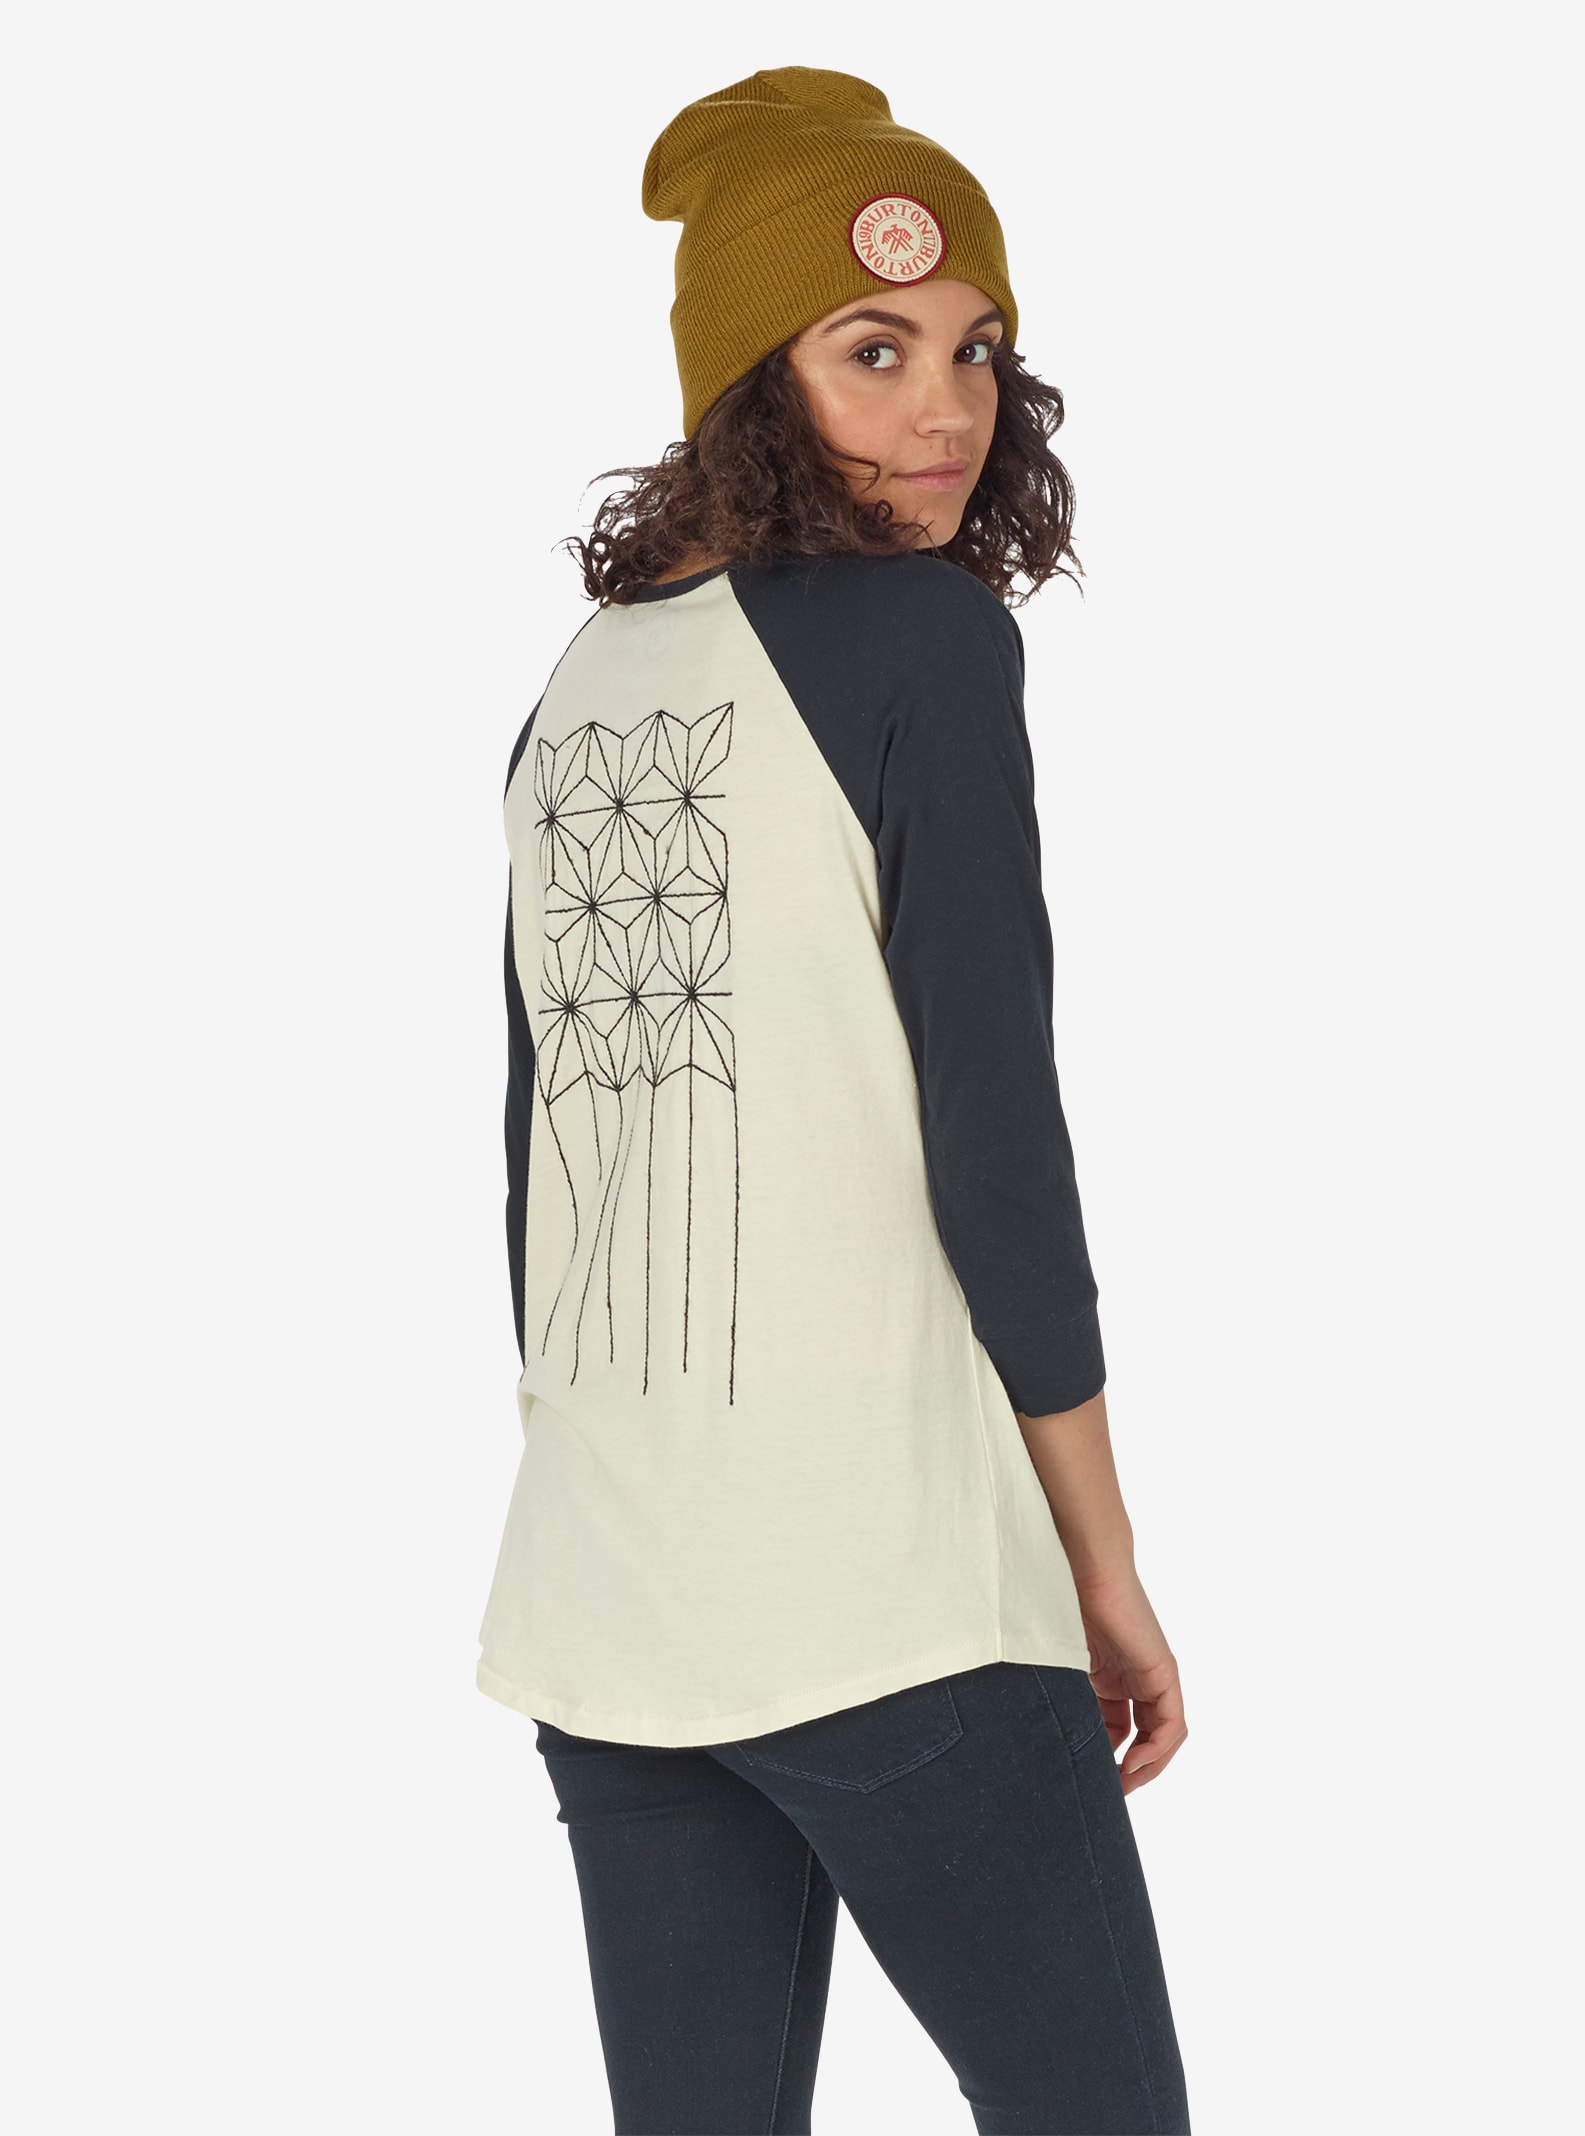 Women's Burton Caratunk Raglan Tee shown in Canvas